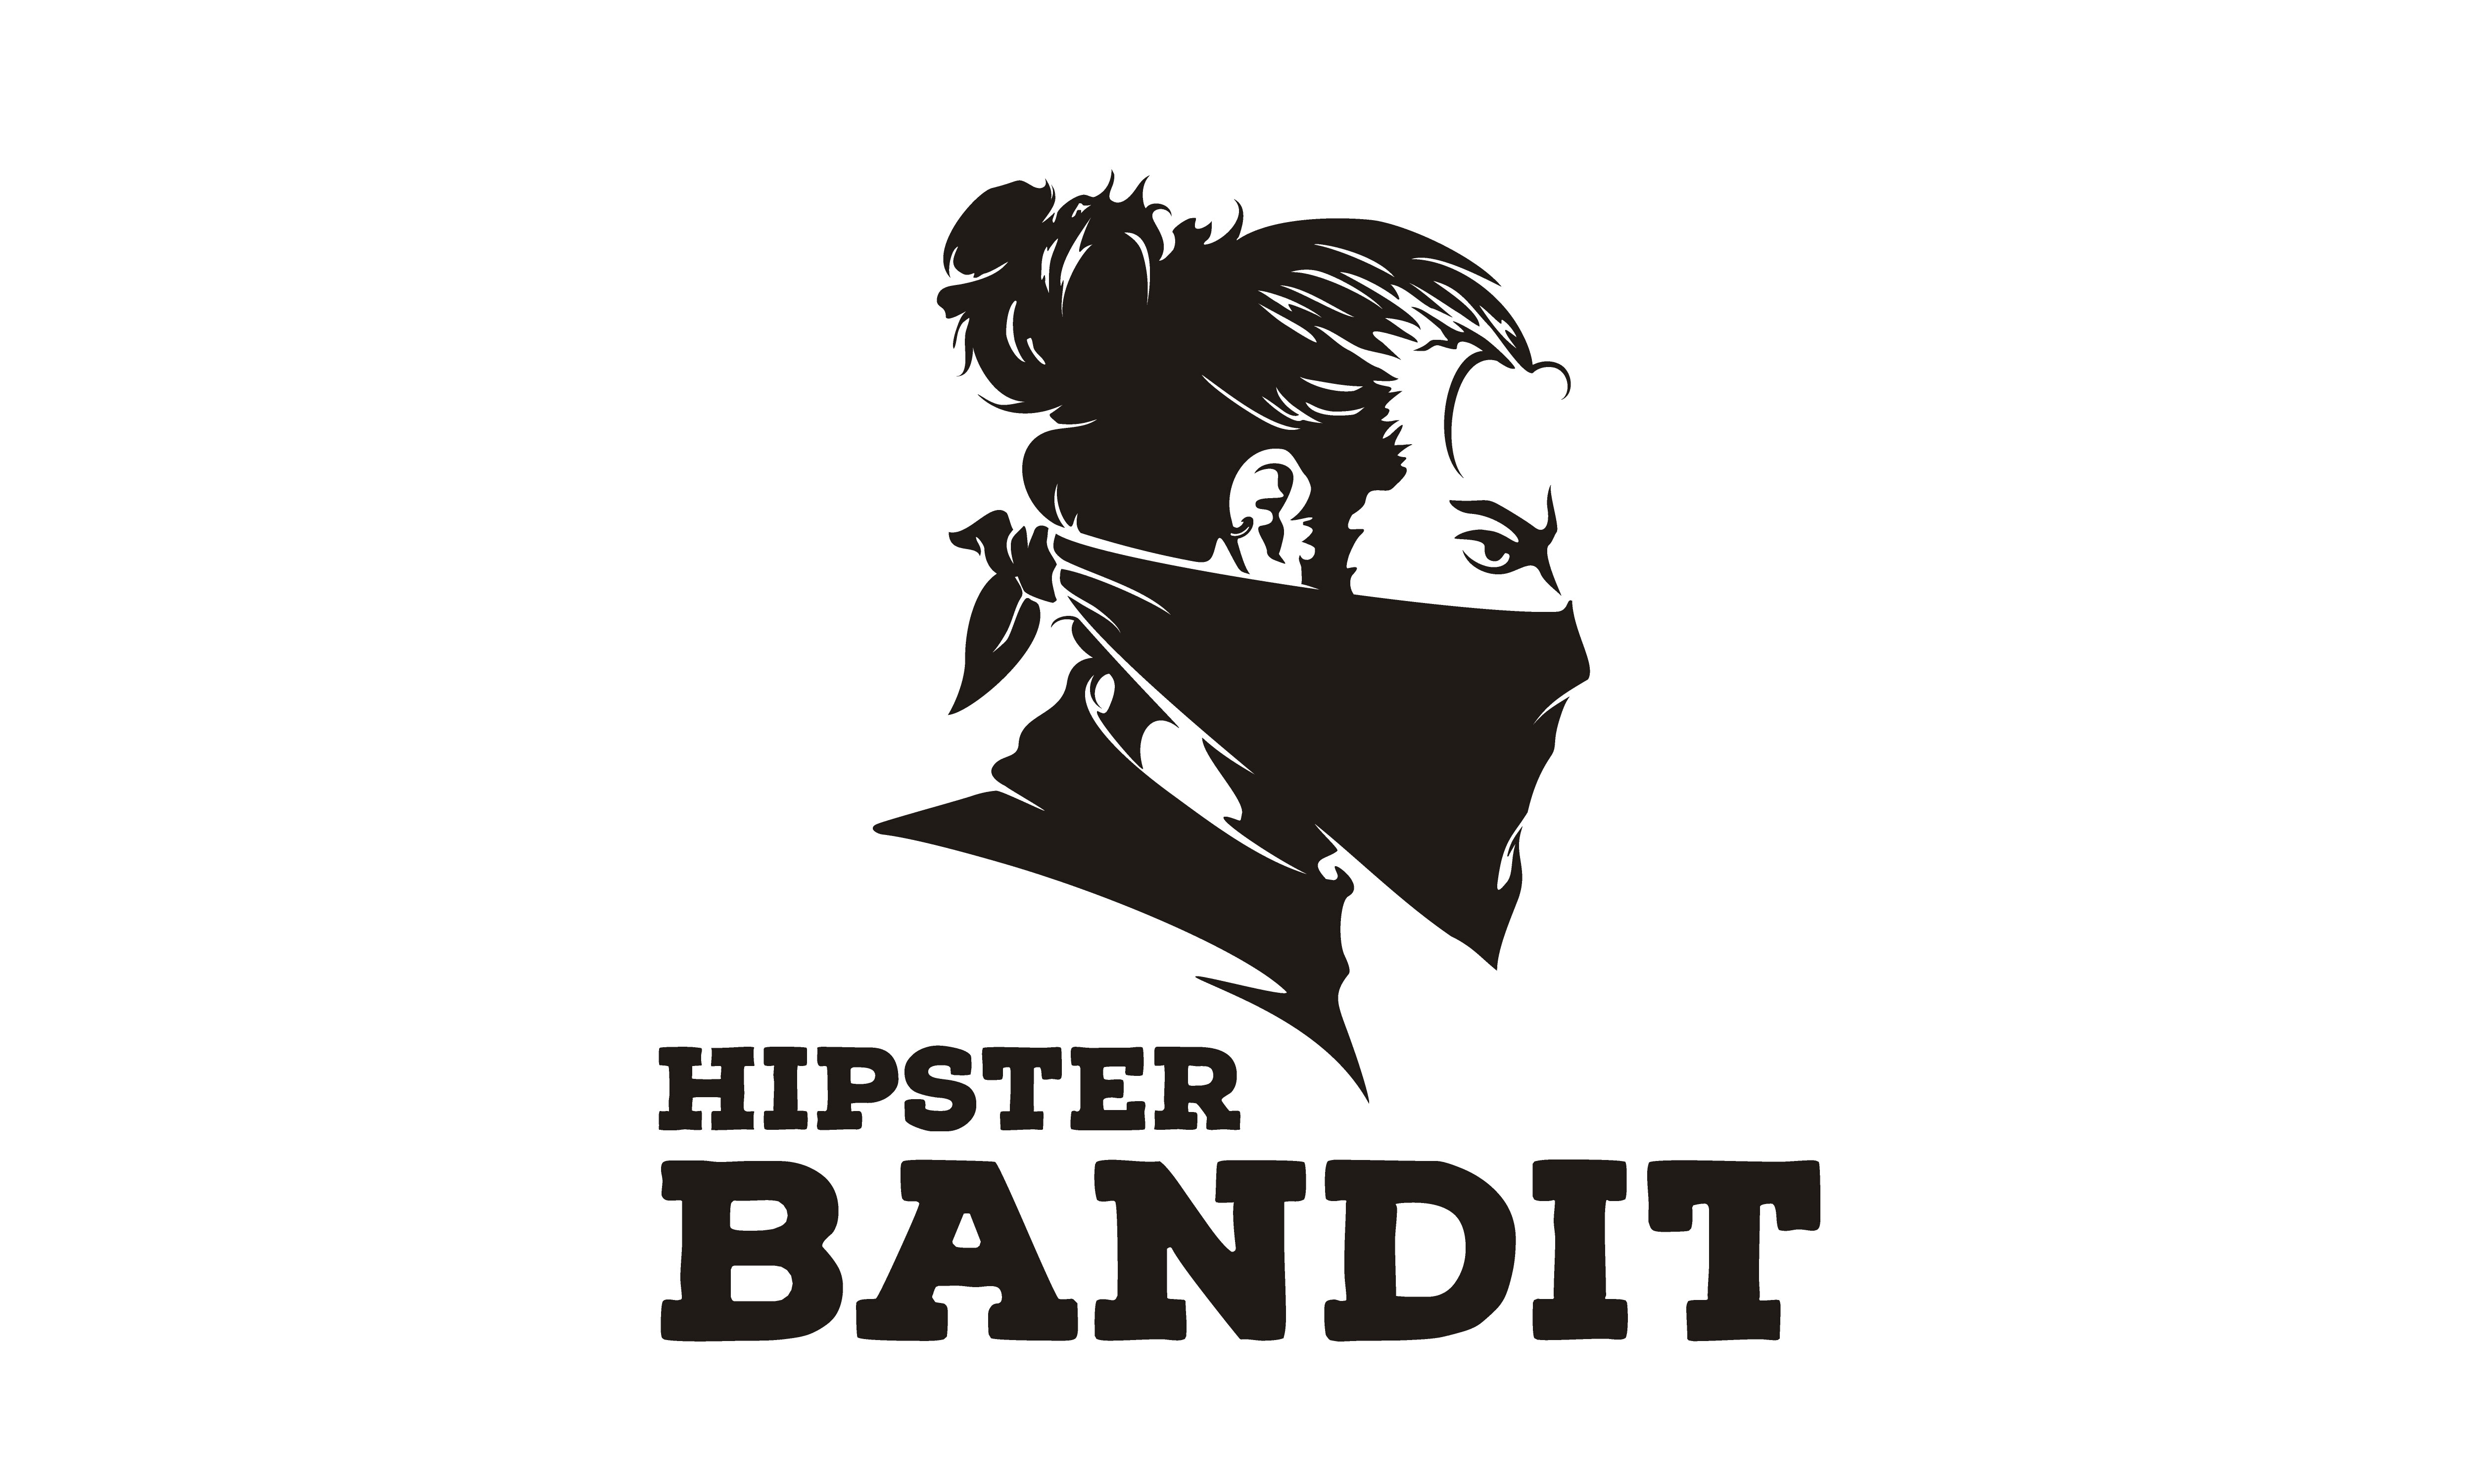 Download Free Hipster Bun Hair Bandit Scarf Mask Logo Graphic By Enola99d for Cricut Explore, Silhouette and other cutting machines.